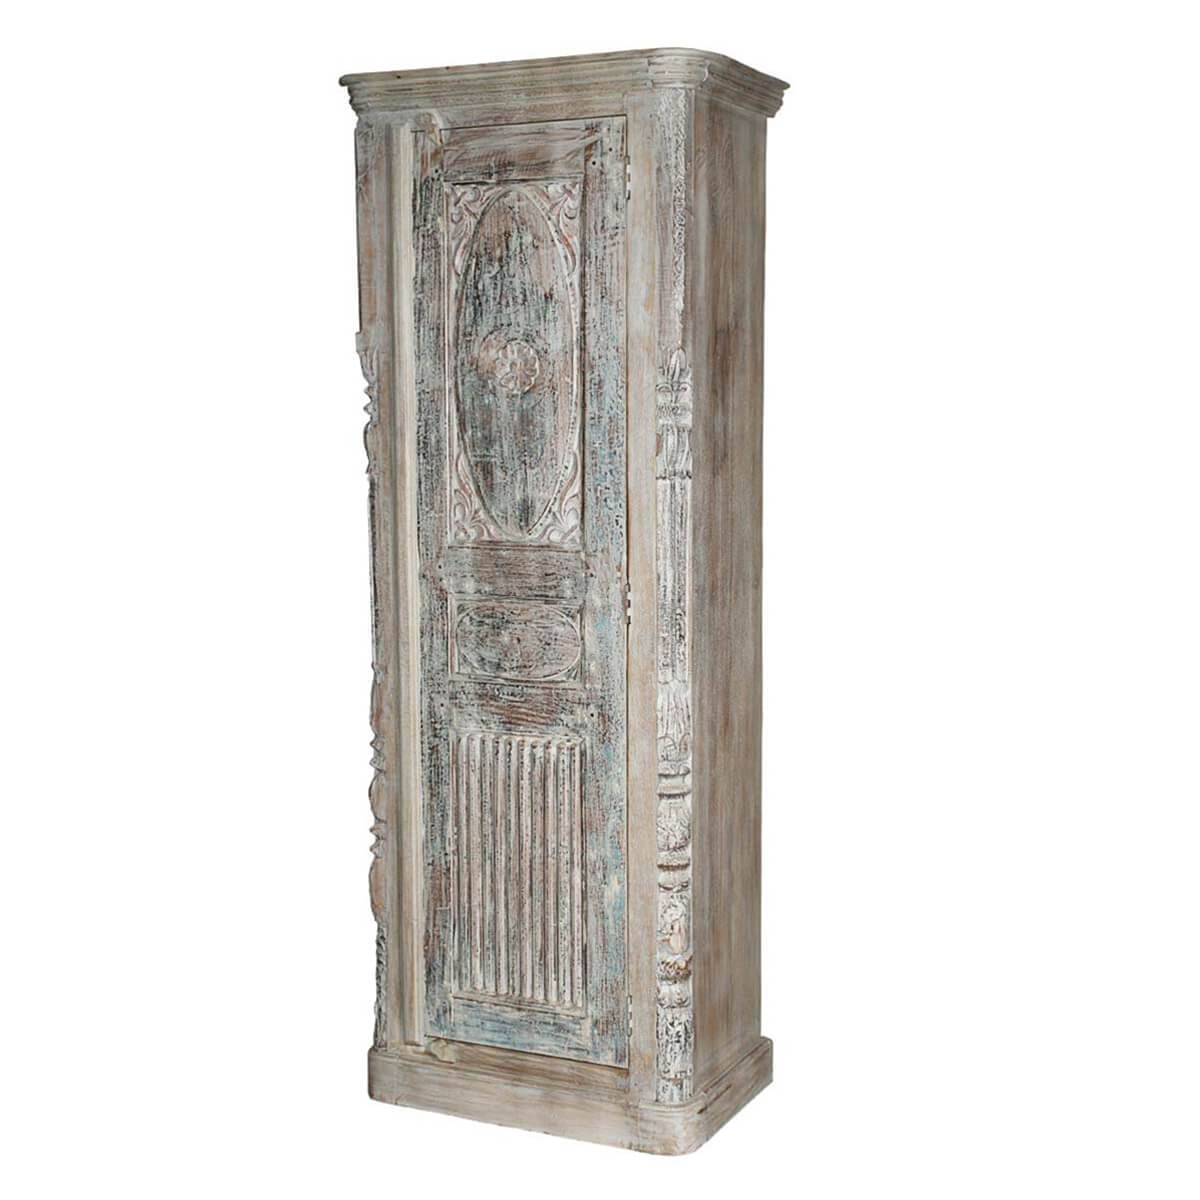 Sirmons Gothic Whitewashed Rustic Solid Wood Tall Narrow Armoire